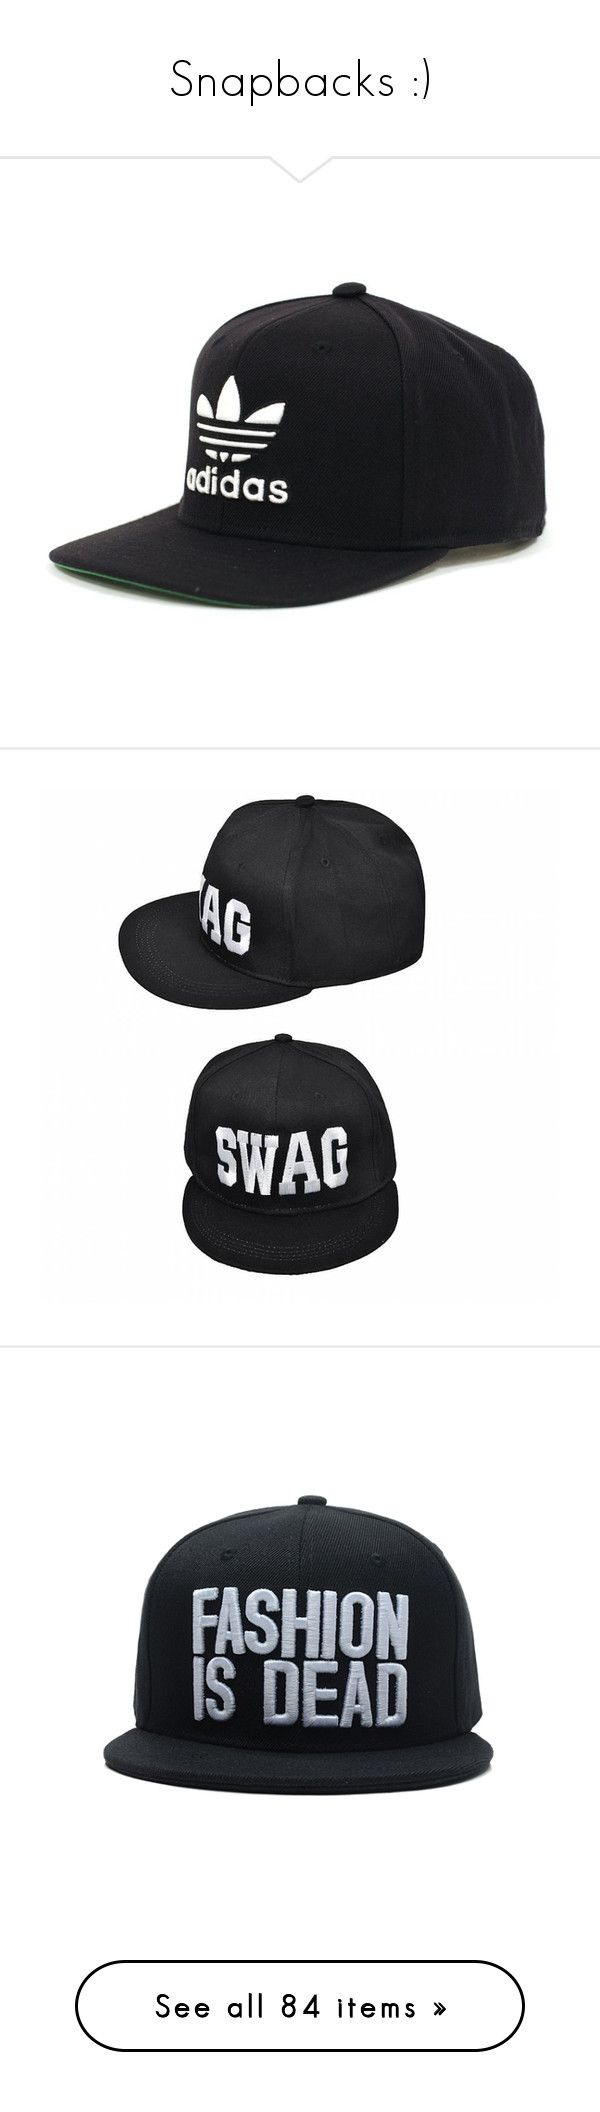 """""""Snapbacks :)"""" by coolcat000 ❤ liked on Polyvore featuring accessories, hats, black, black white hat, black and white snapback hats, snap back hats, black white snapback, flat hats, black cap and caps hats"""